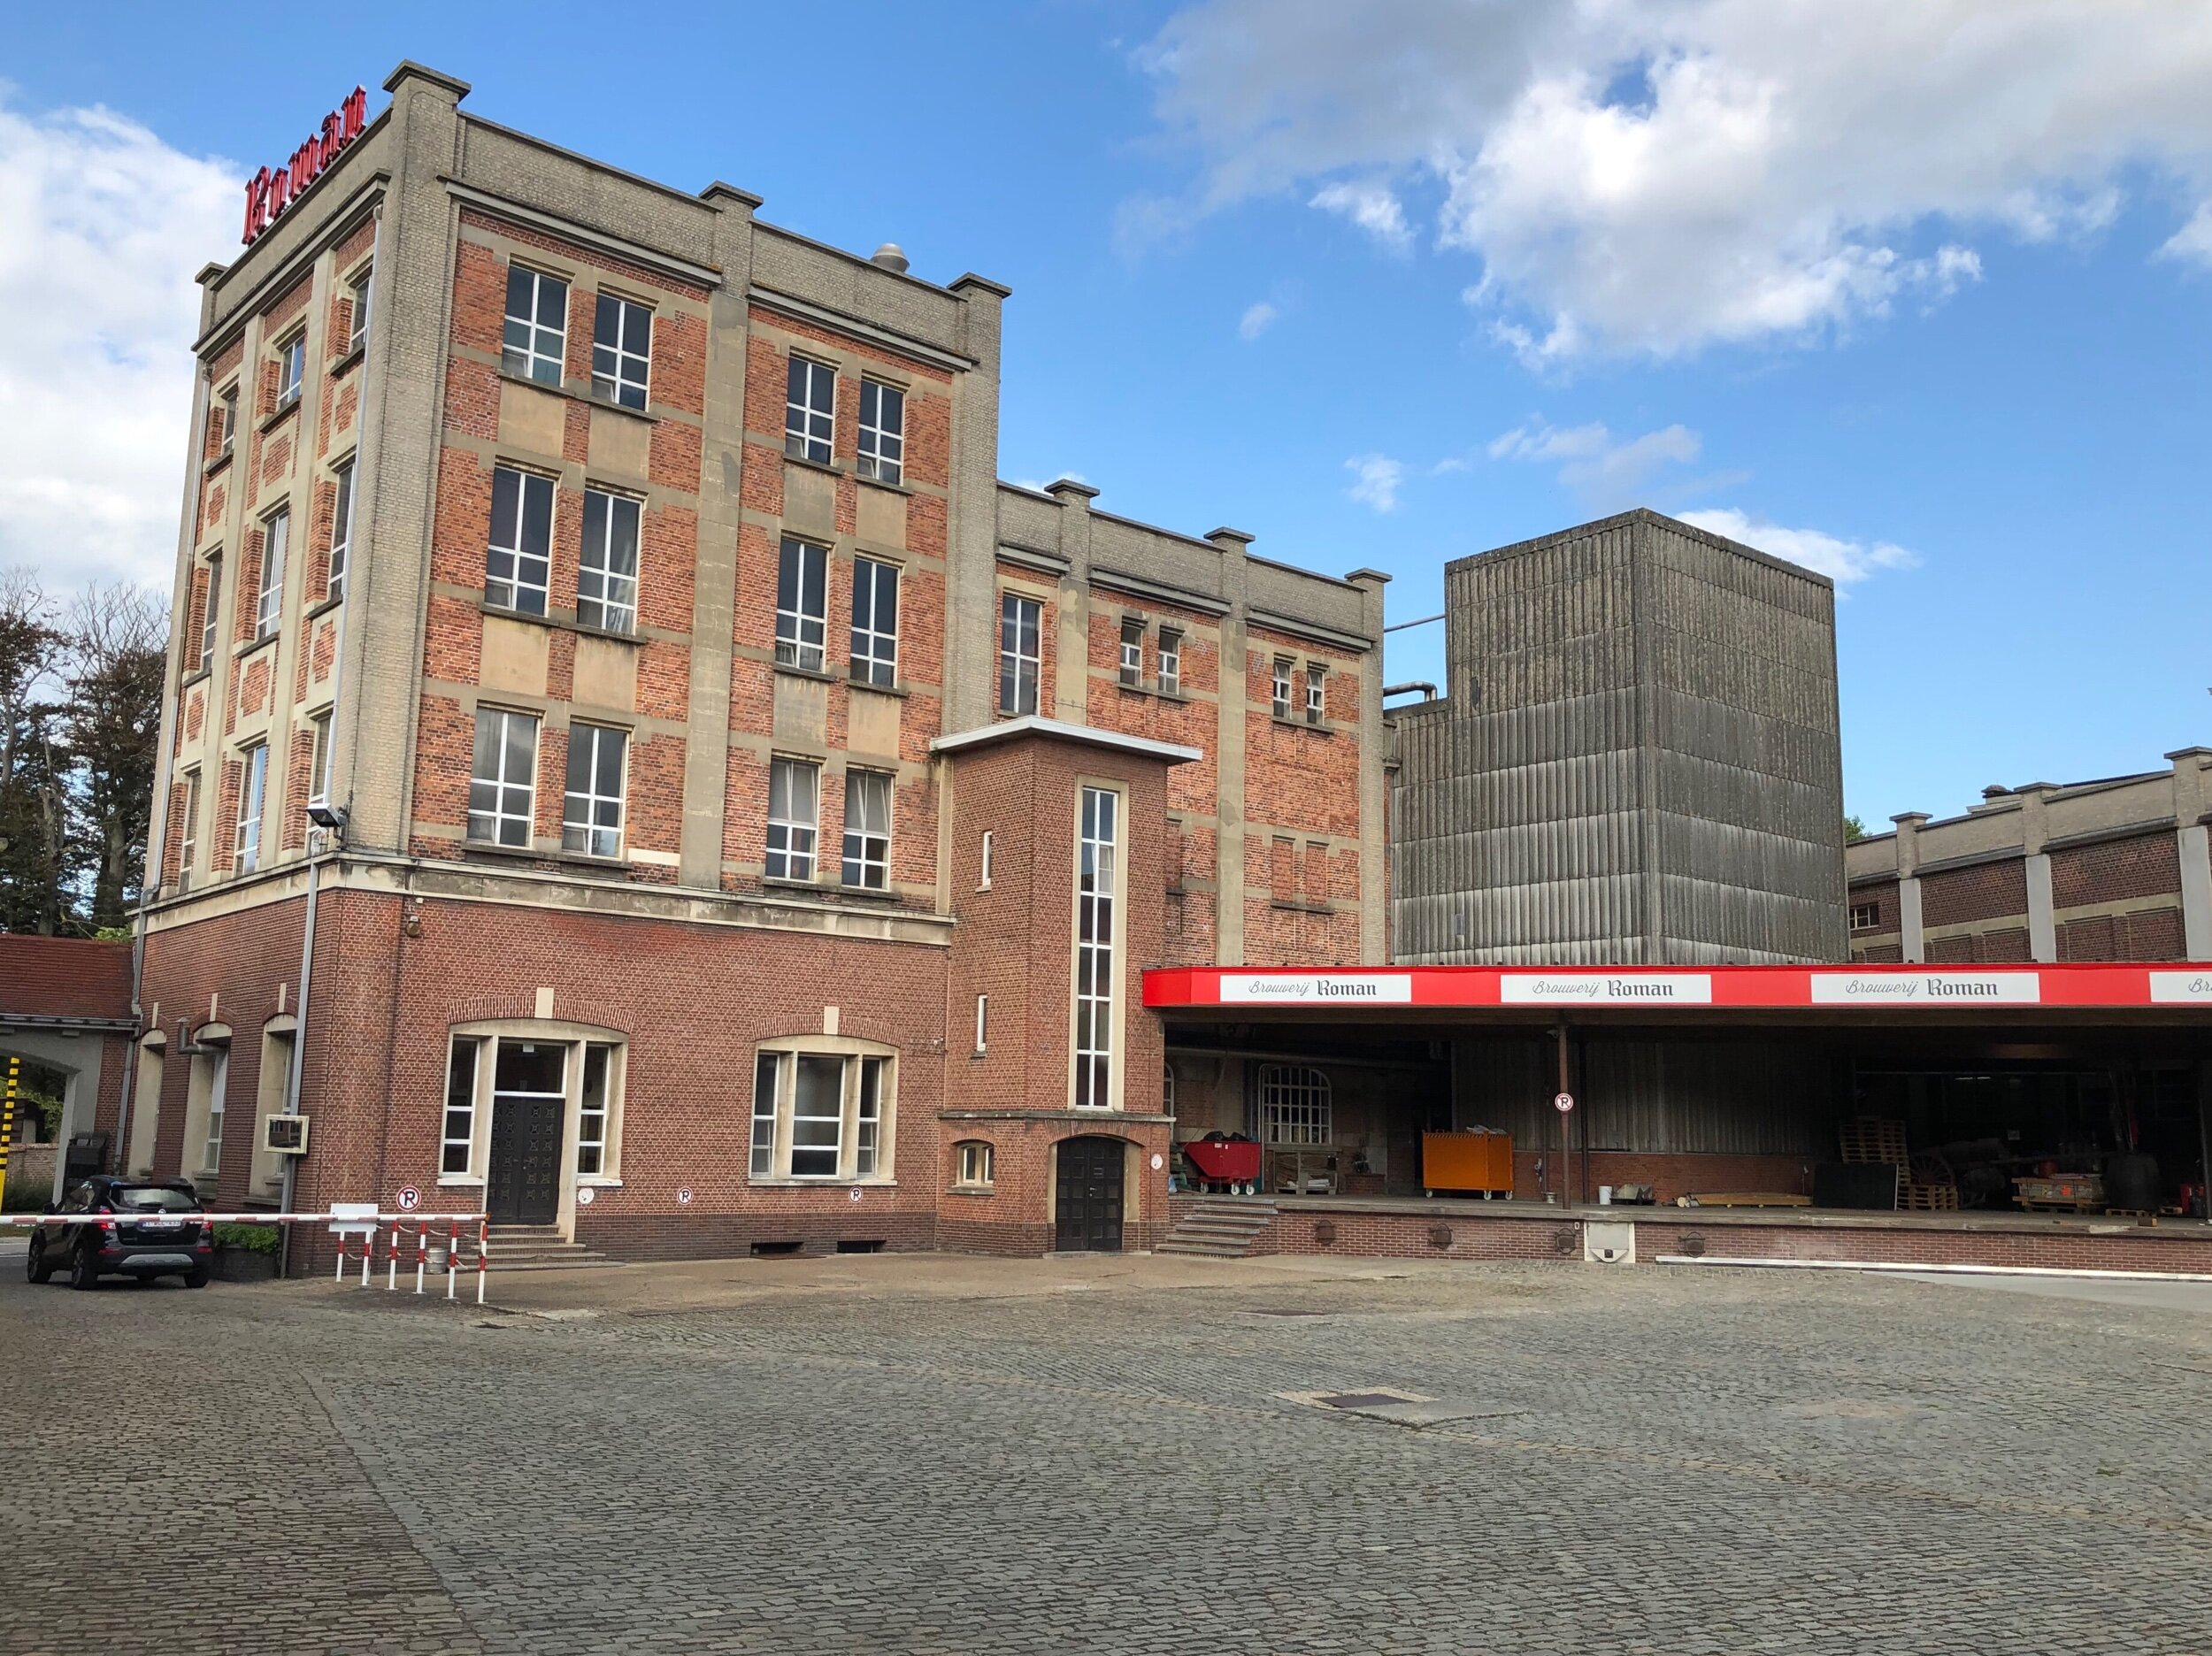 The brewery was built around a giant courtyard where, when it opened around 1930, horse wagons would have come in for delivery.